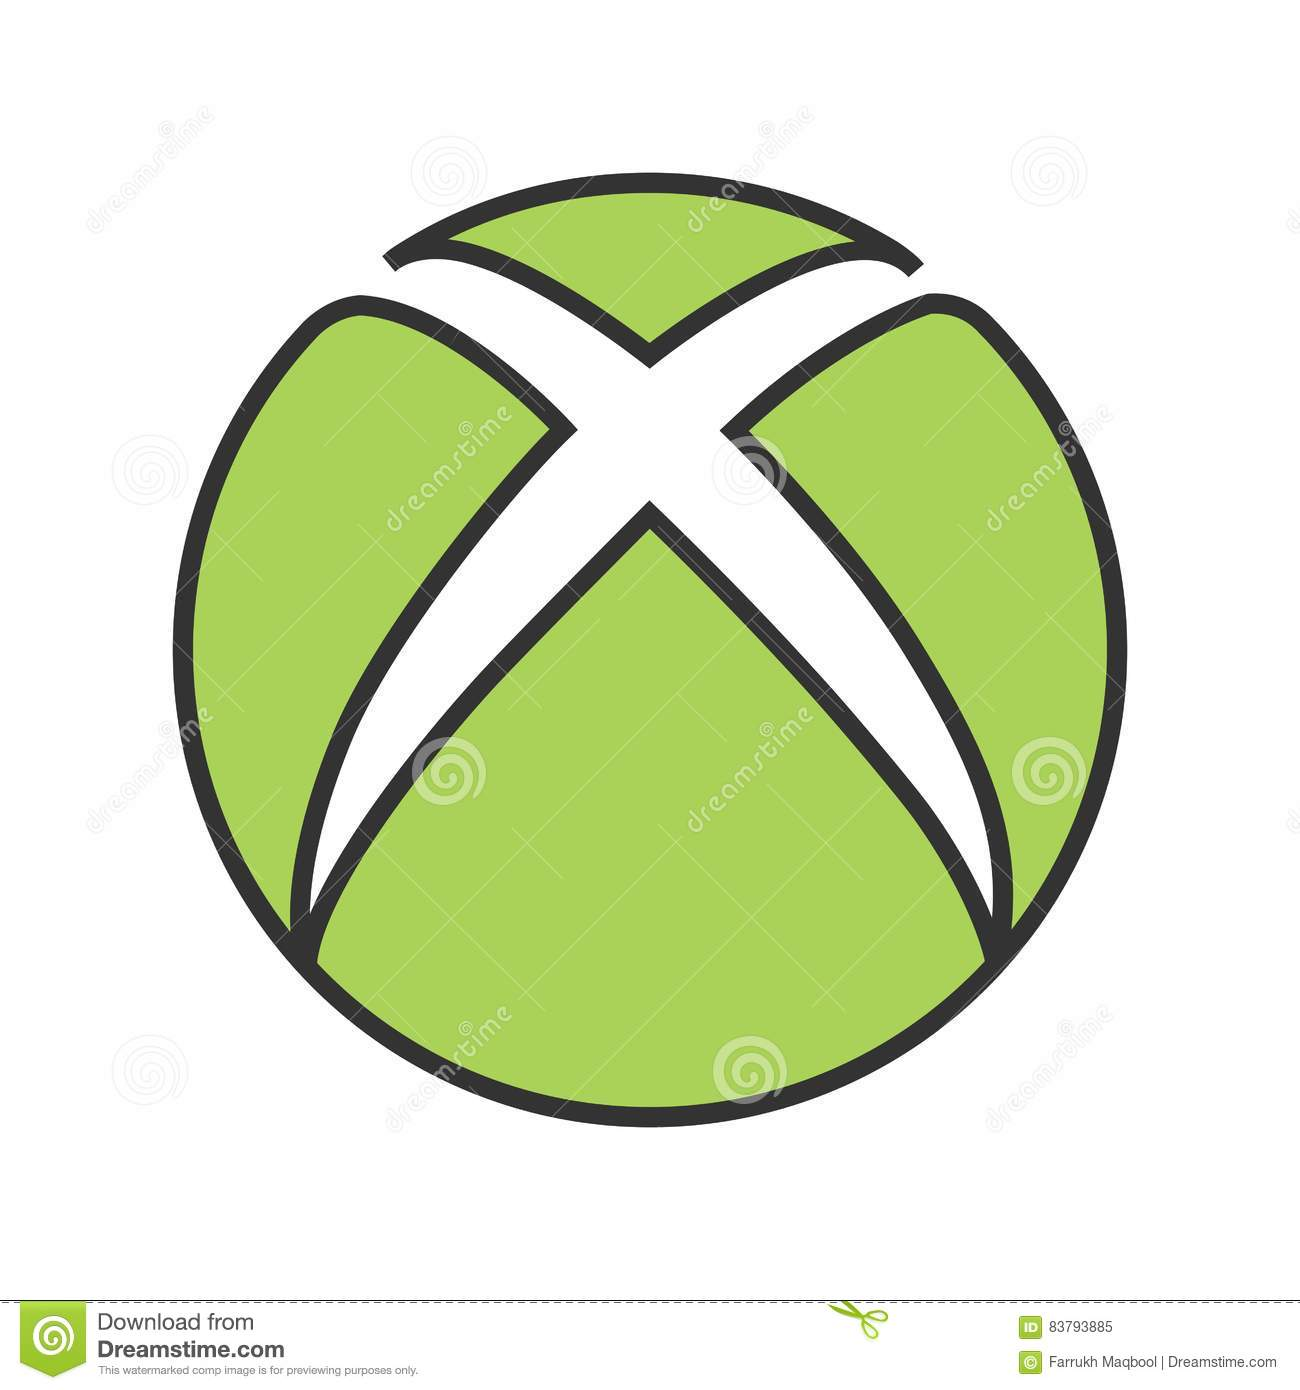 xbox cartoon vector cartoondealercom 83793885